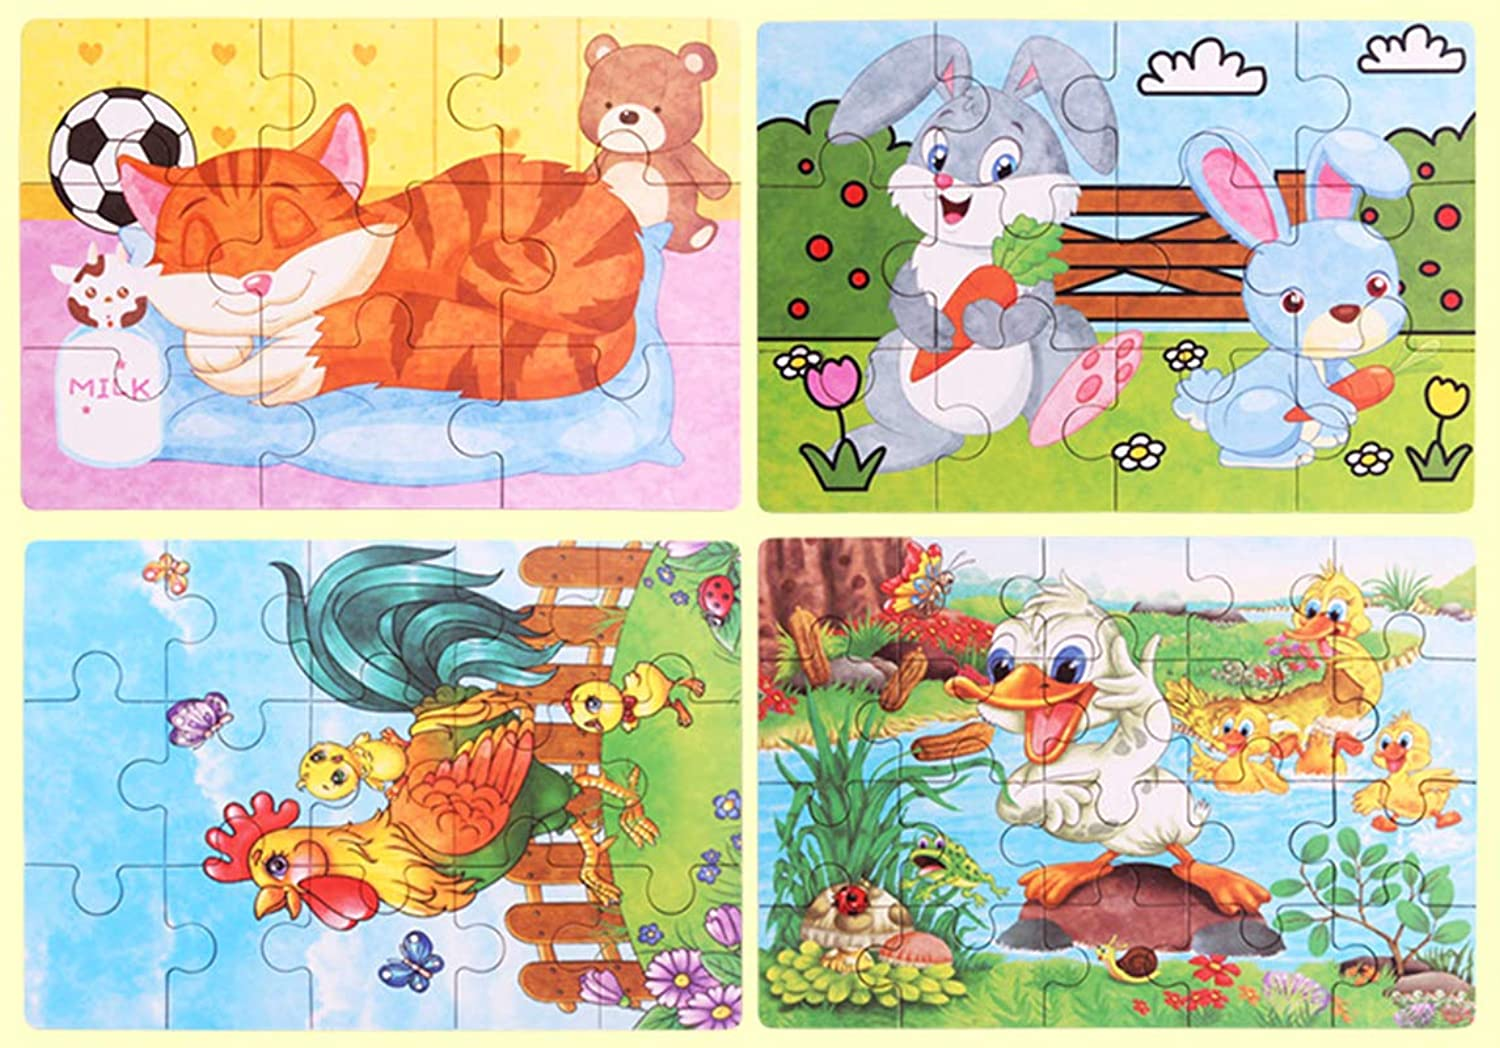 Xiaoyu Toddlers Jigsaw Puzzles, Wooden Animals Educational Puzzle, Baby Puzzles Age 3+ Toddlers Puzzles for Kids Boys and Girls, Cat